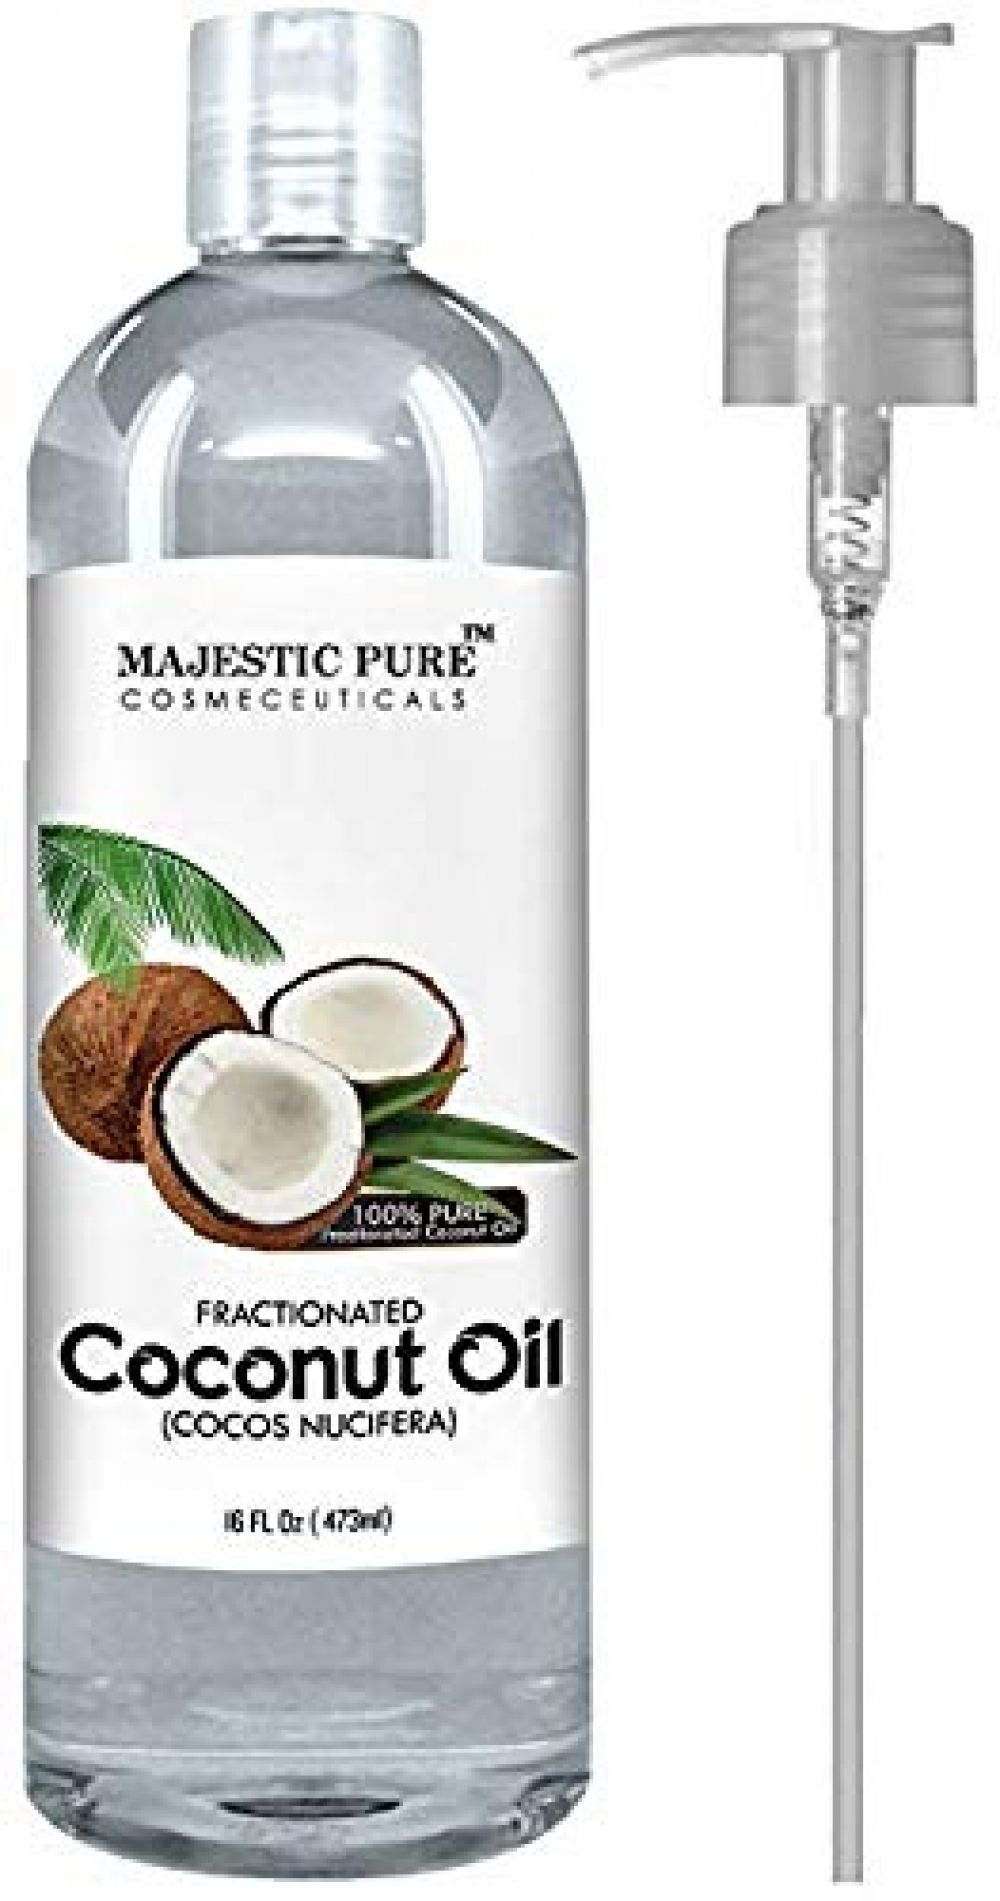 Majestic Pure Fractionated Coconut Oil For Aromatherapy Relaxing Massage Carrier Oil For Dilu Aromatherapy Carrier Oils Coconut Oil For Acne Coconut Oil Uses